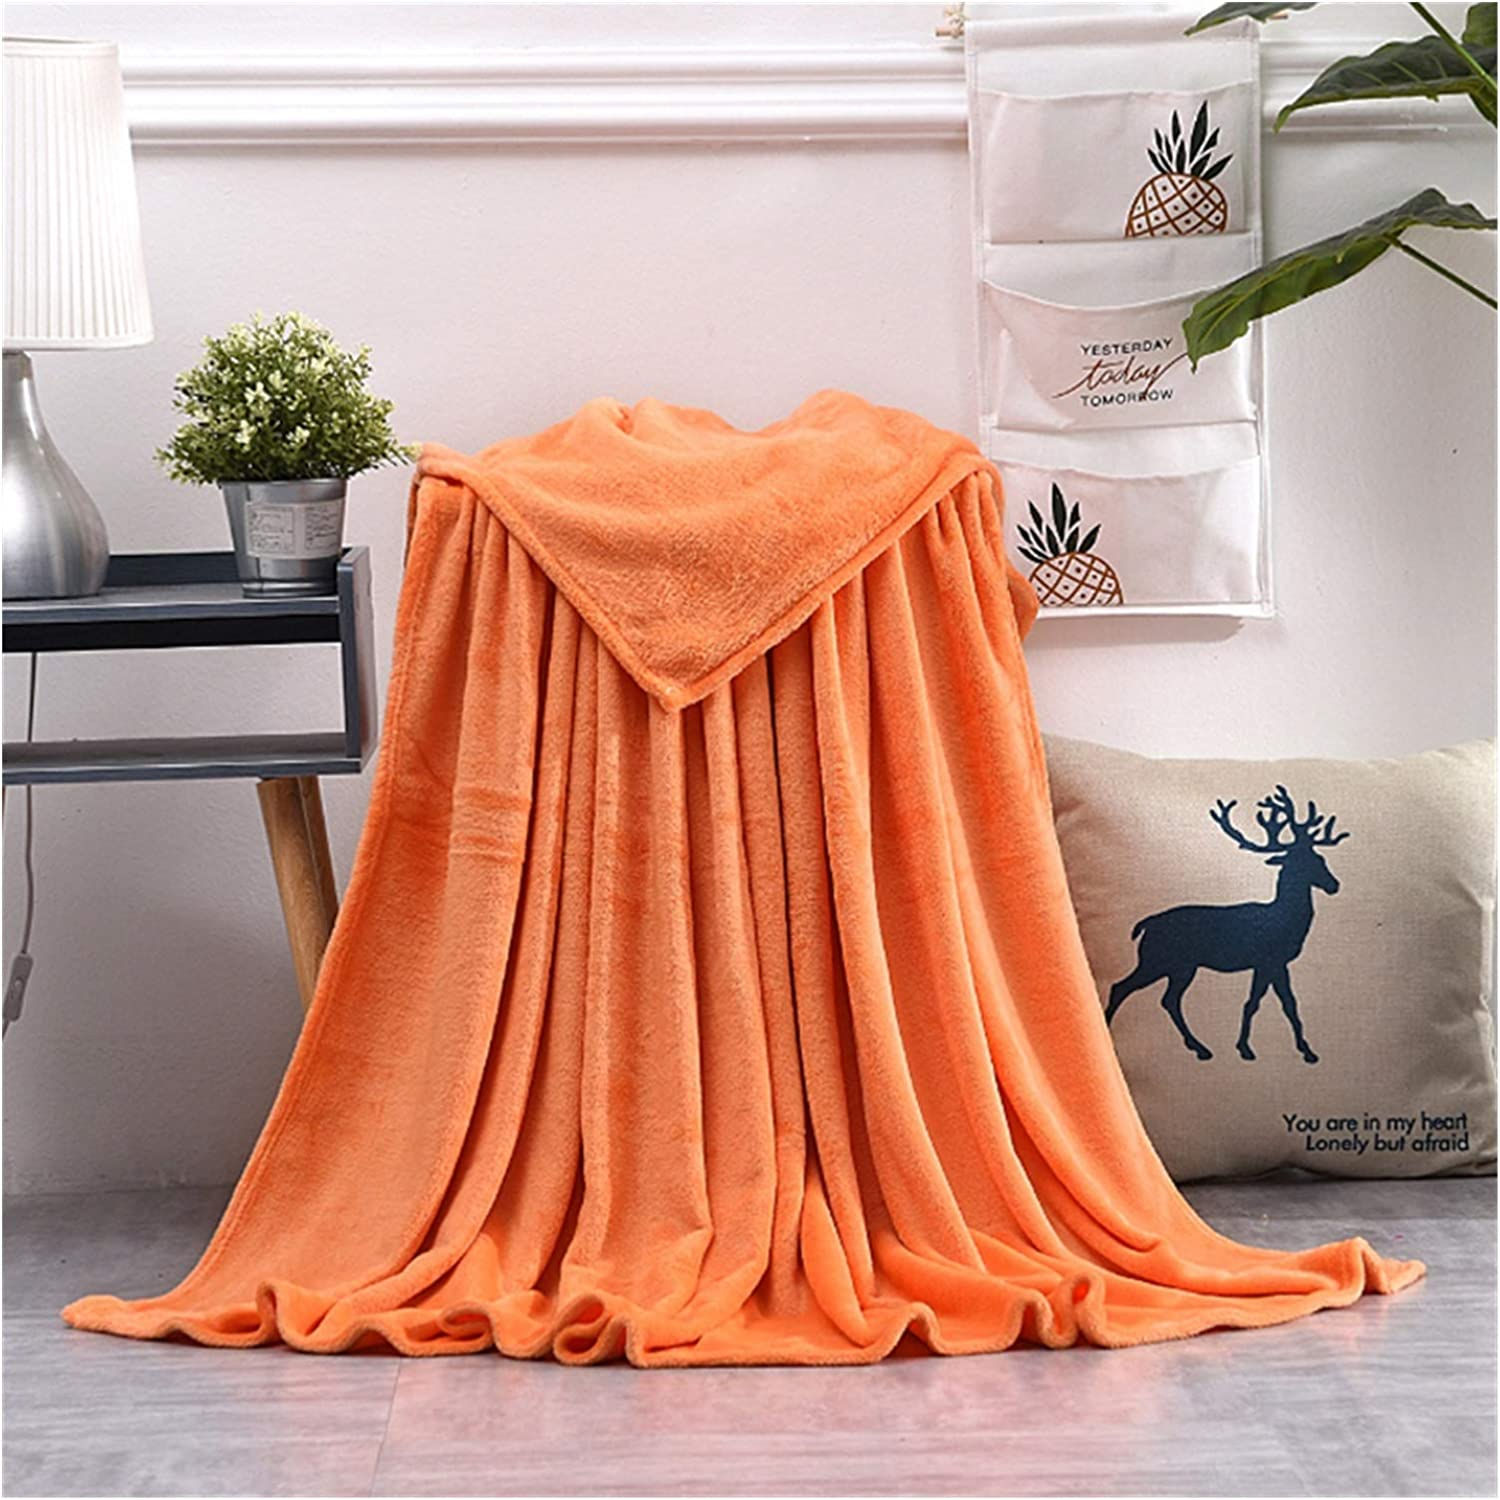 JDJD Bed Blanket Coral Fleece Same day shipping At the price Flannel Fur Faux Blankets for Beds